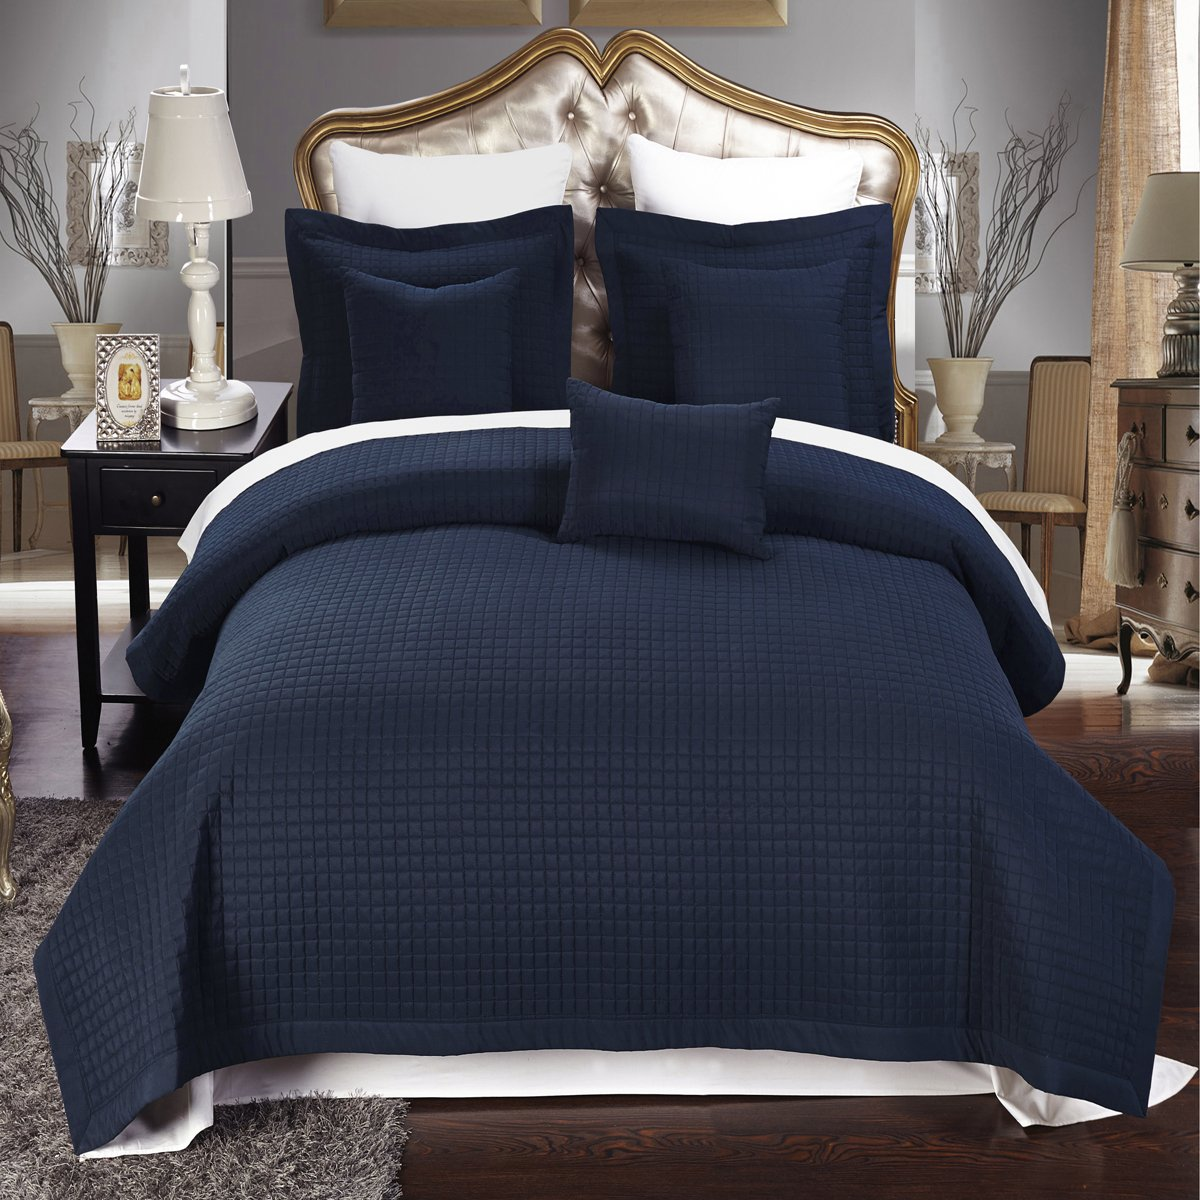 Amazon.com: Full / Queen Size Navy Coverlet 3pc Set, Luxury Microfiber  Checkered Quilt By Royal Hotel: Home U0026 Kitchen